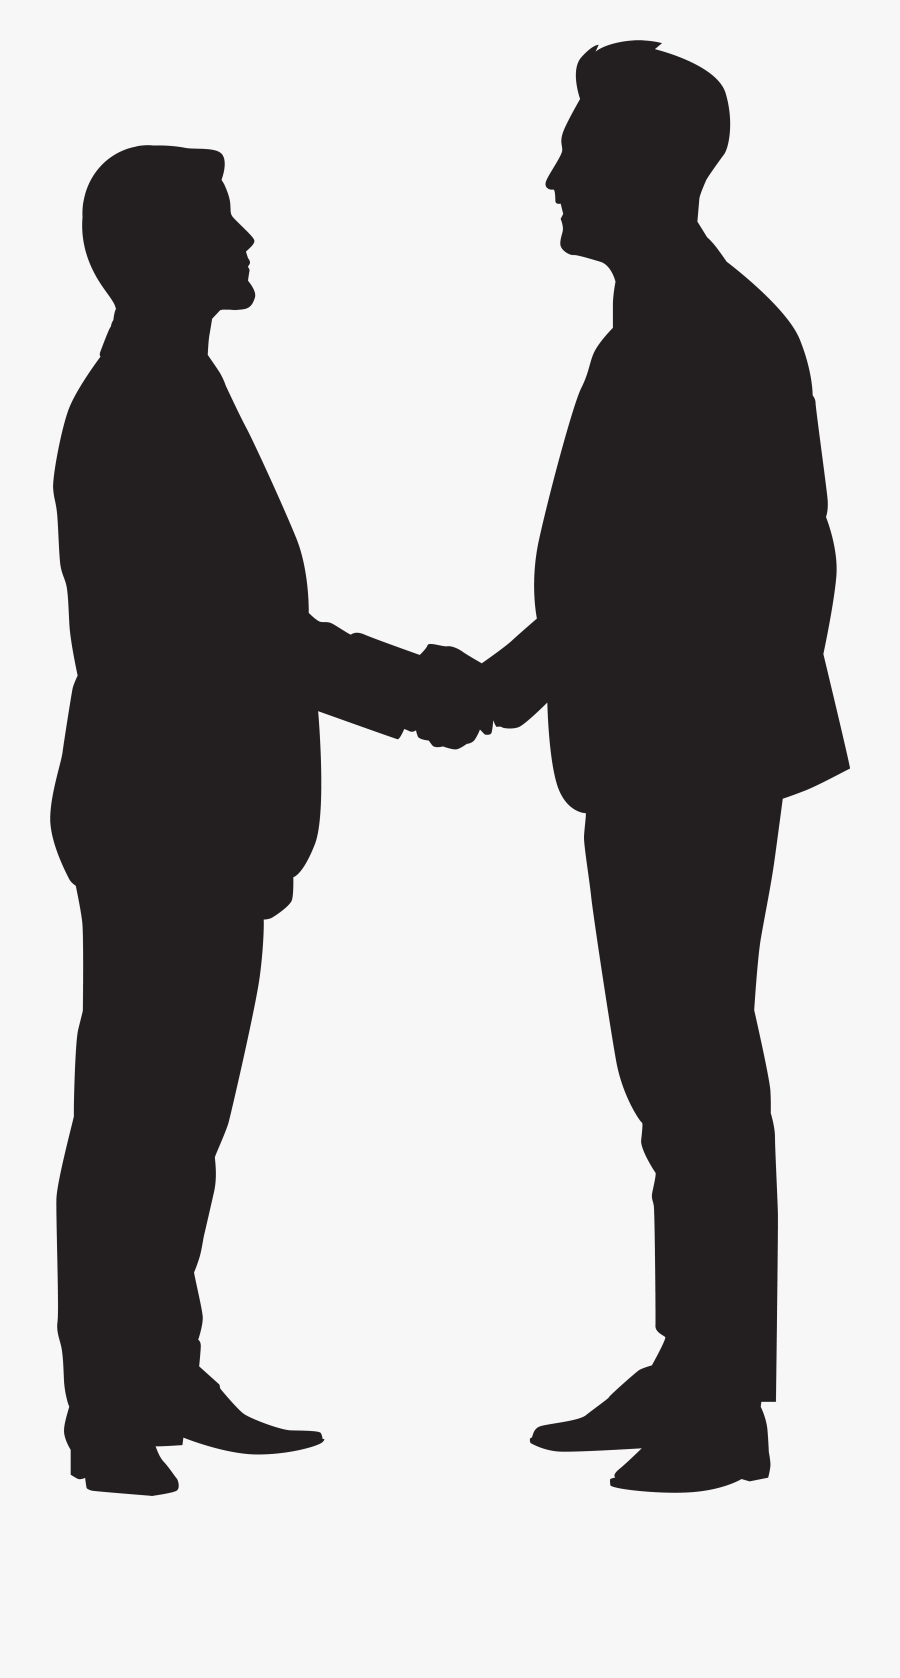 Men Shaking Hands Silhouette Png Clip Art Imageu200b - Men Shaking Hands Clipart, Transparent Clipart